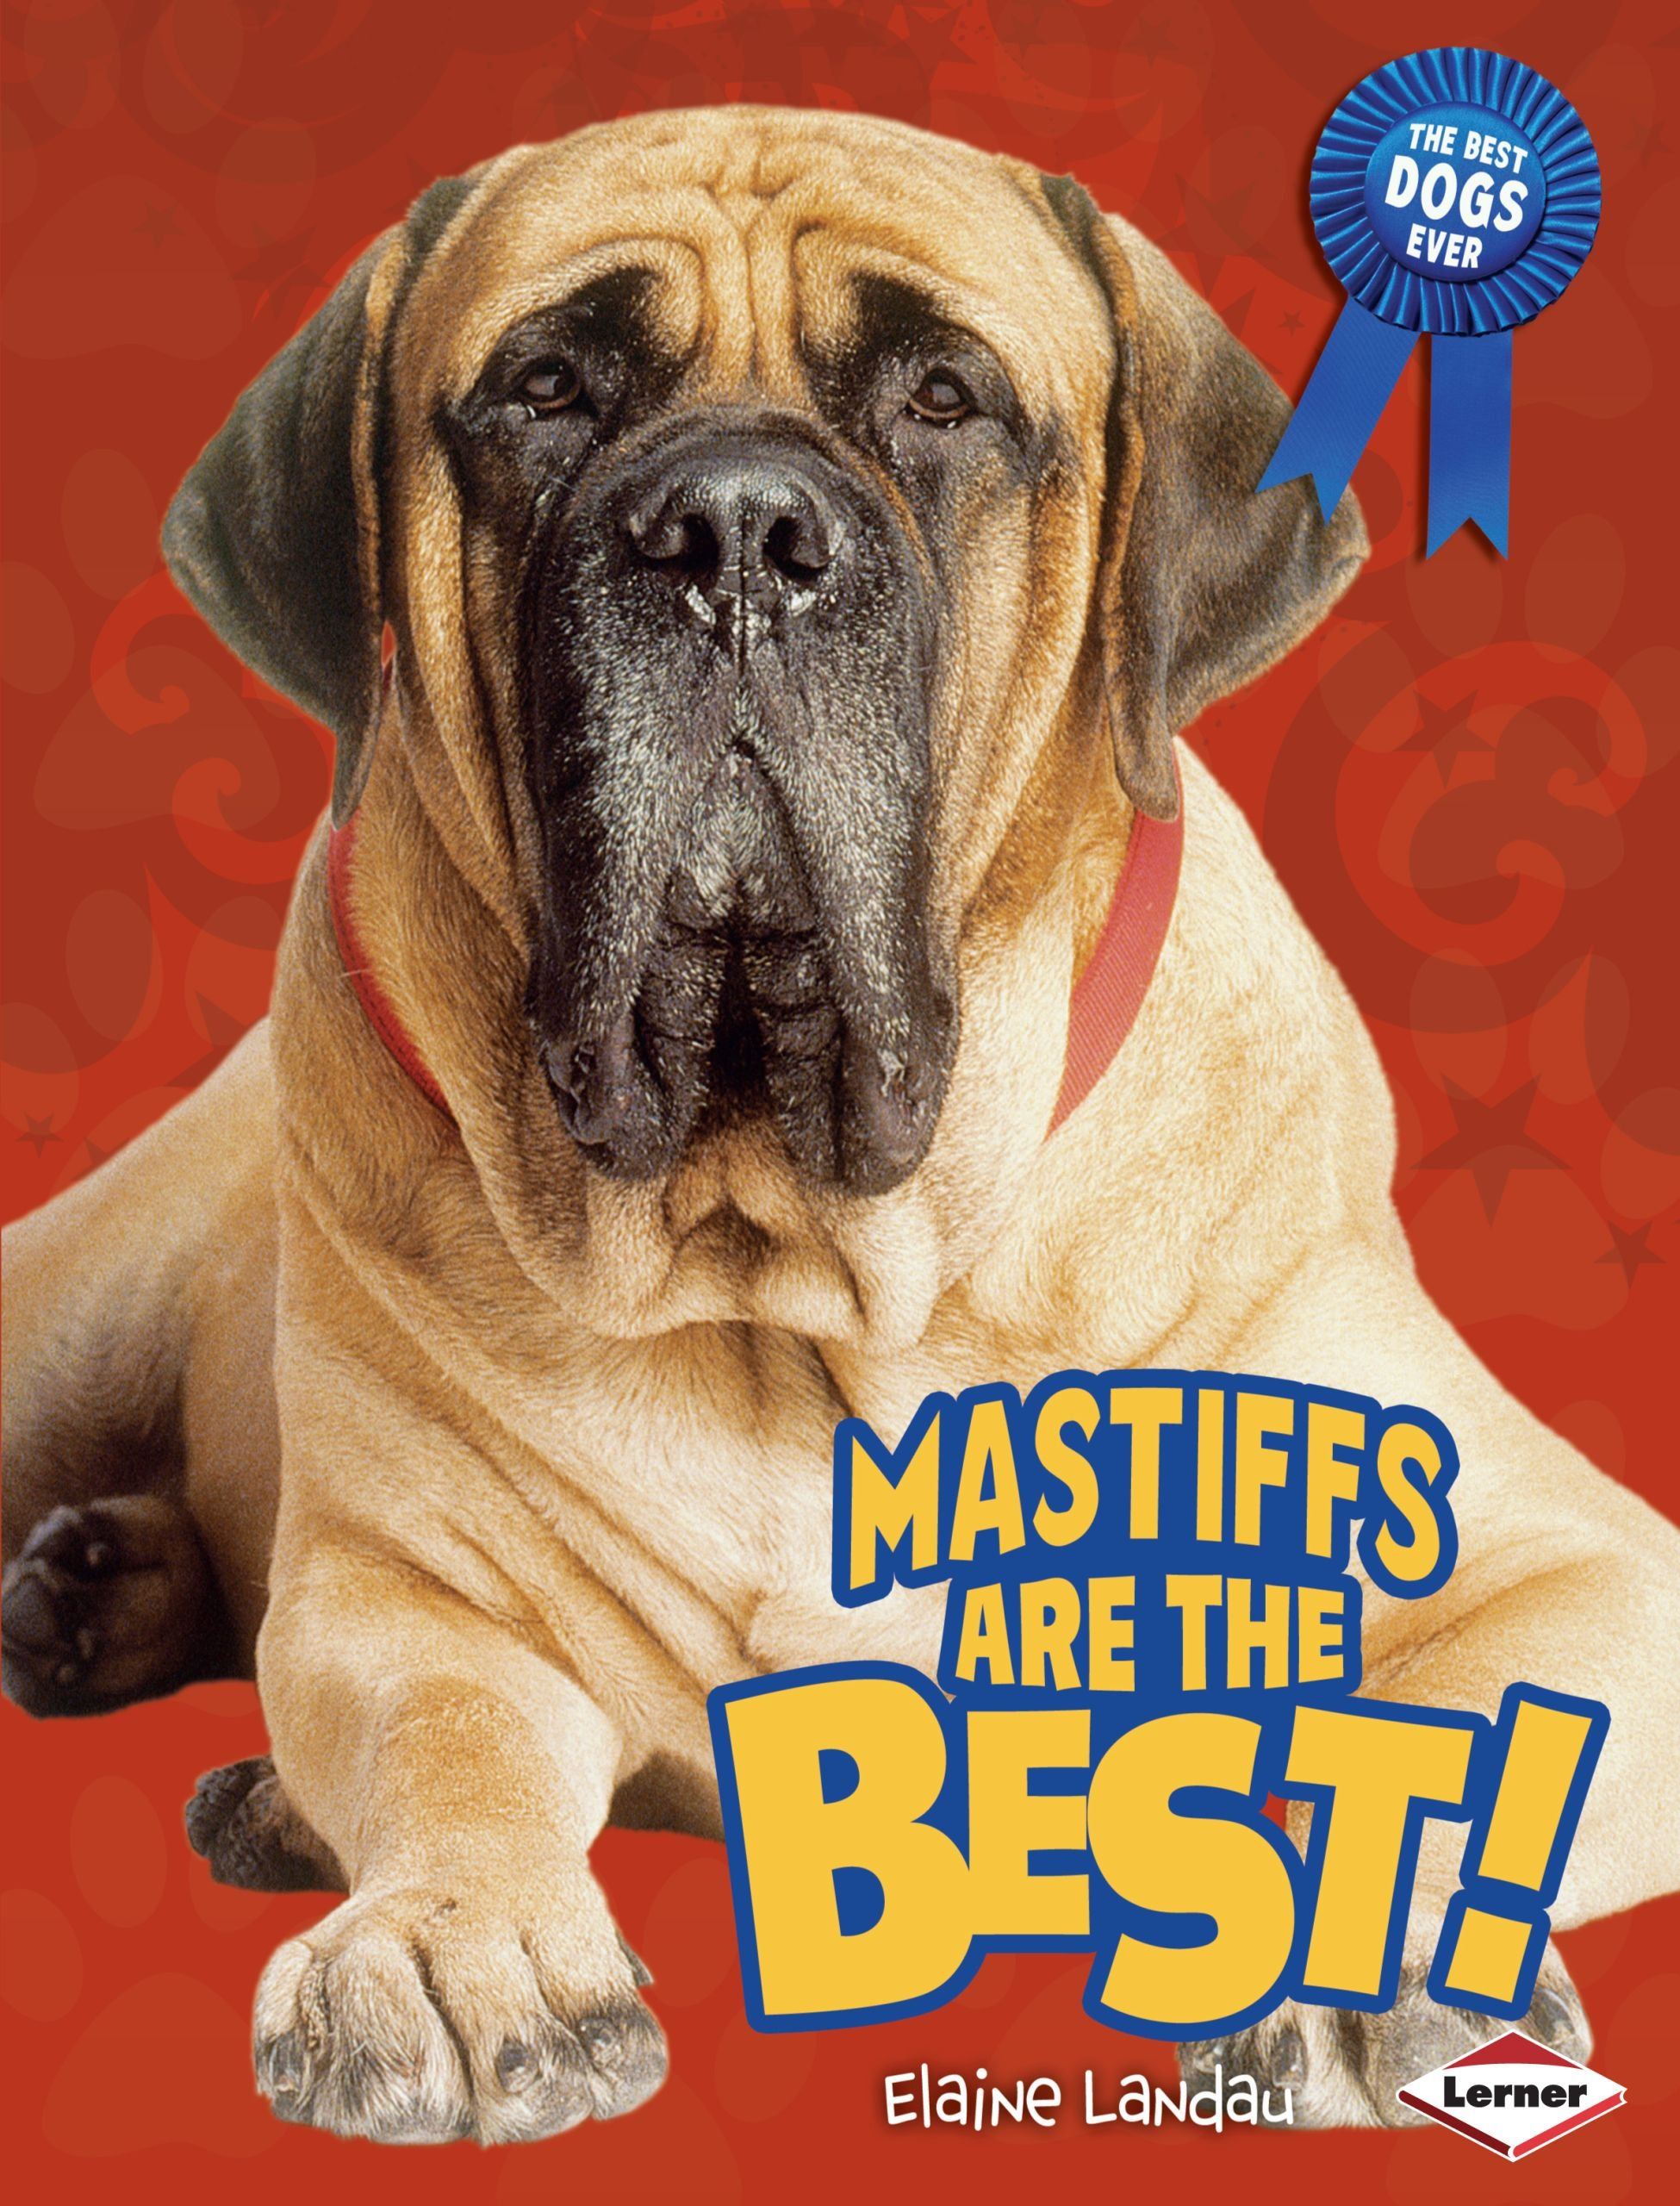 Mastiffs Are the Best! (The Best Dogs Ever) PDF